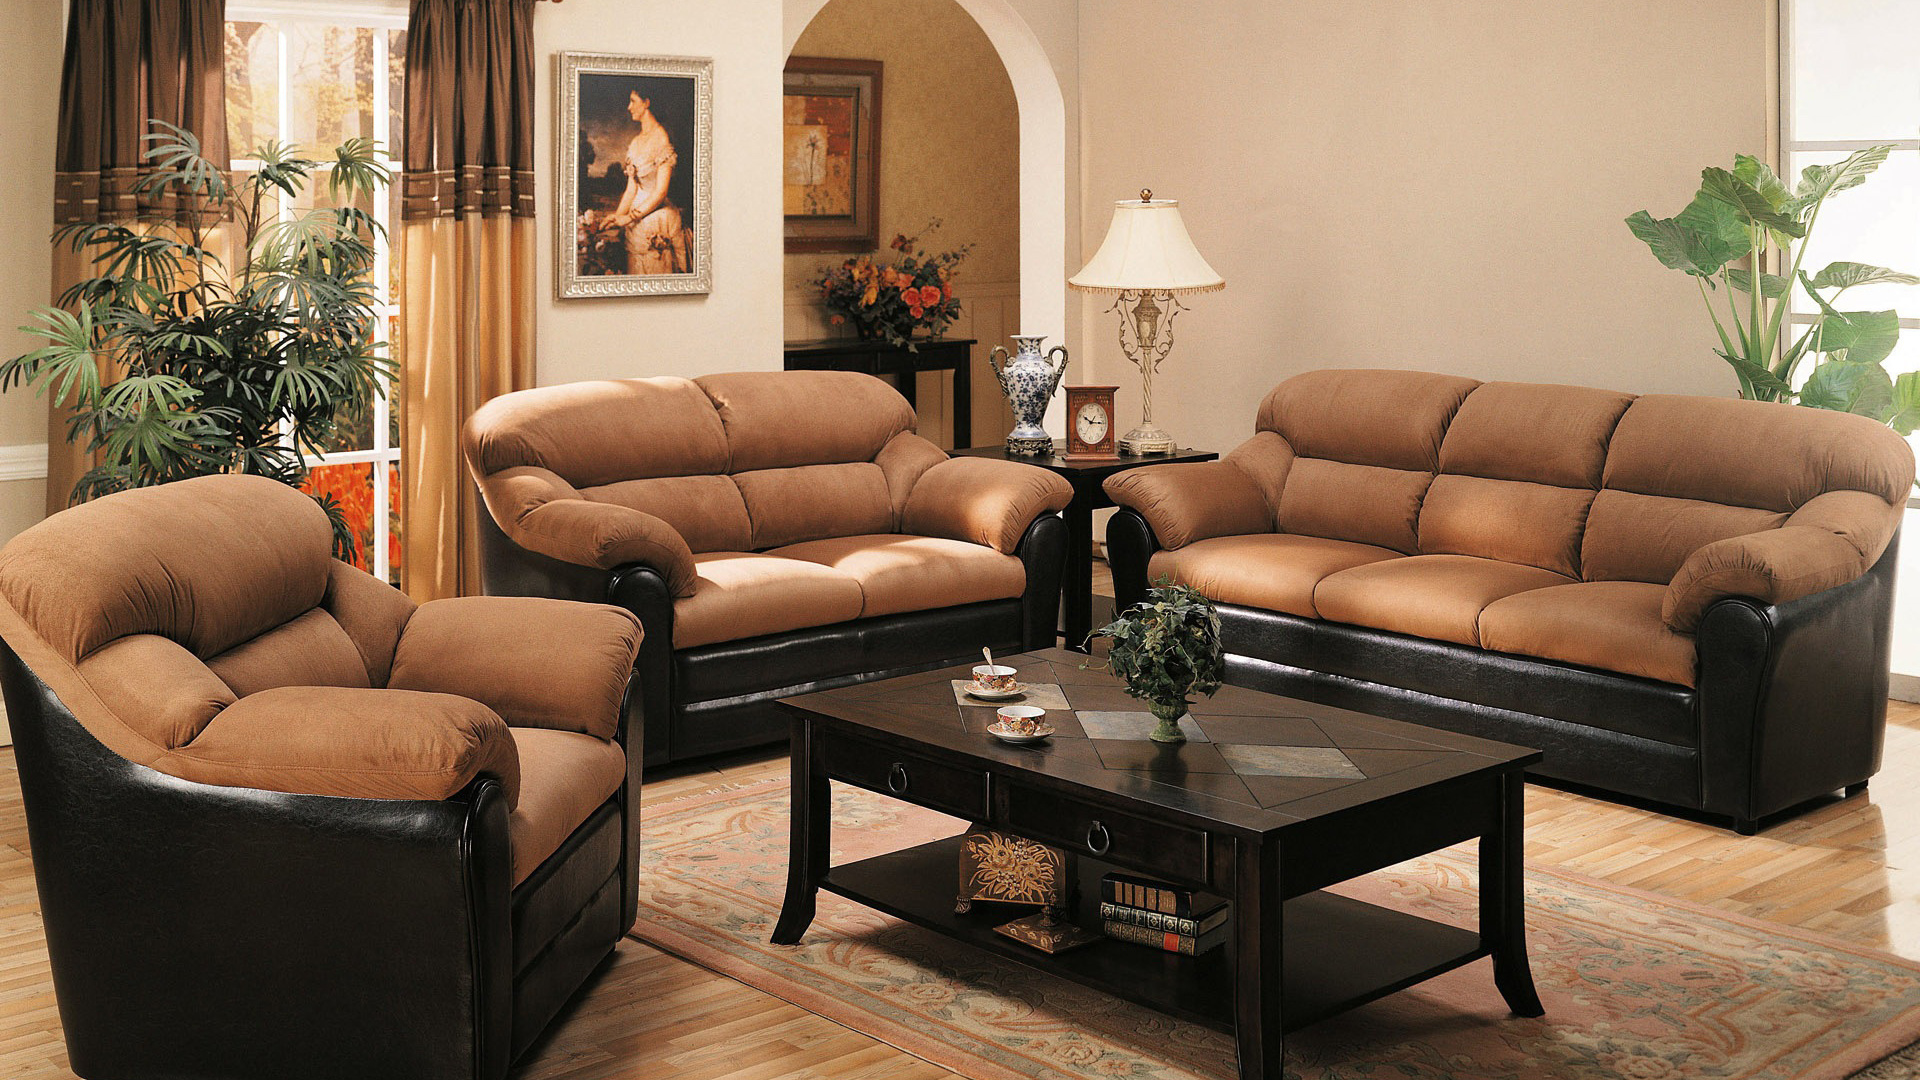 Best 25 Brown leather sofas ideas on Pinterest  Leather